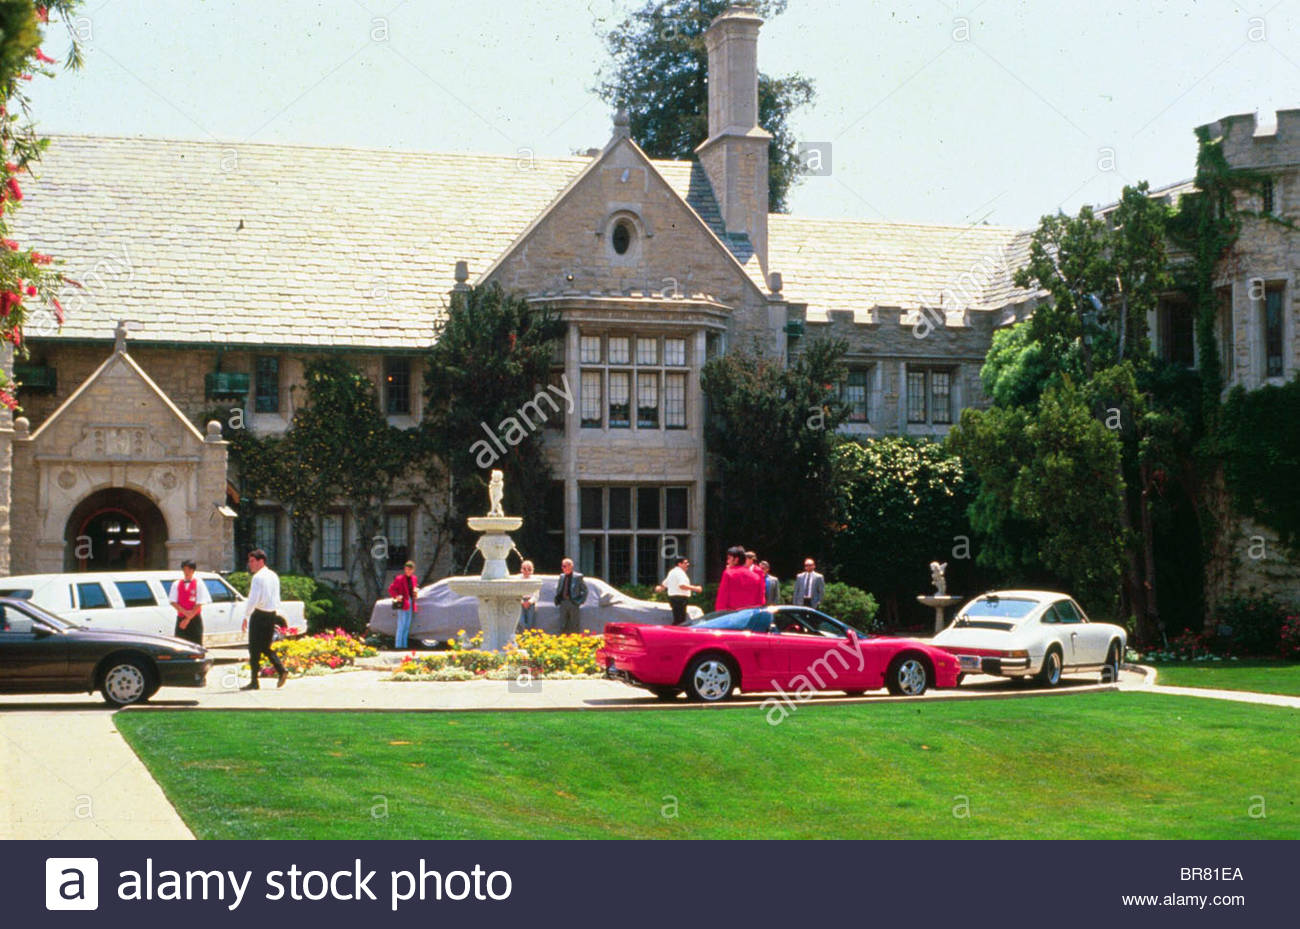 Image result for hugh hefner house